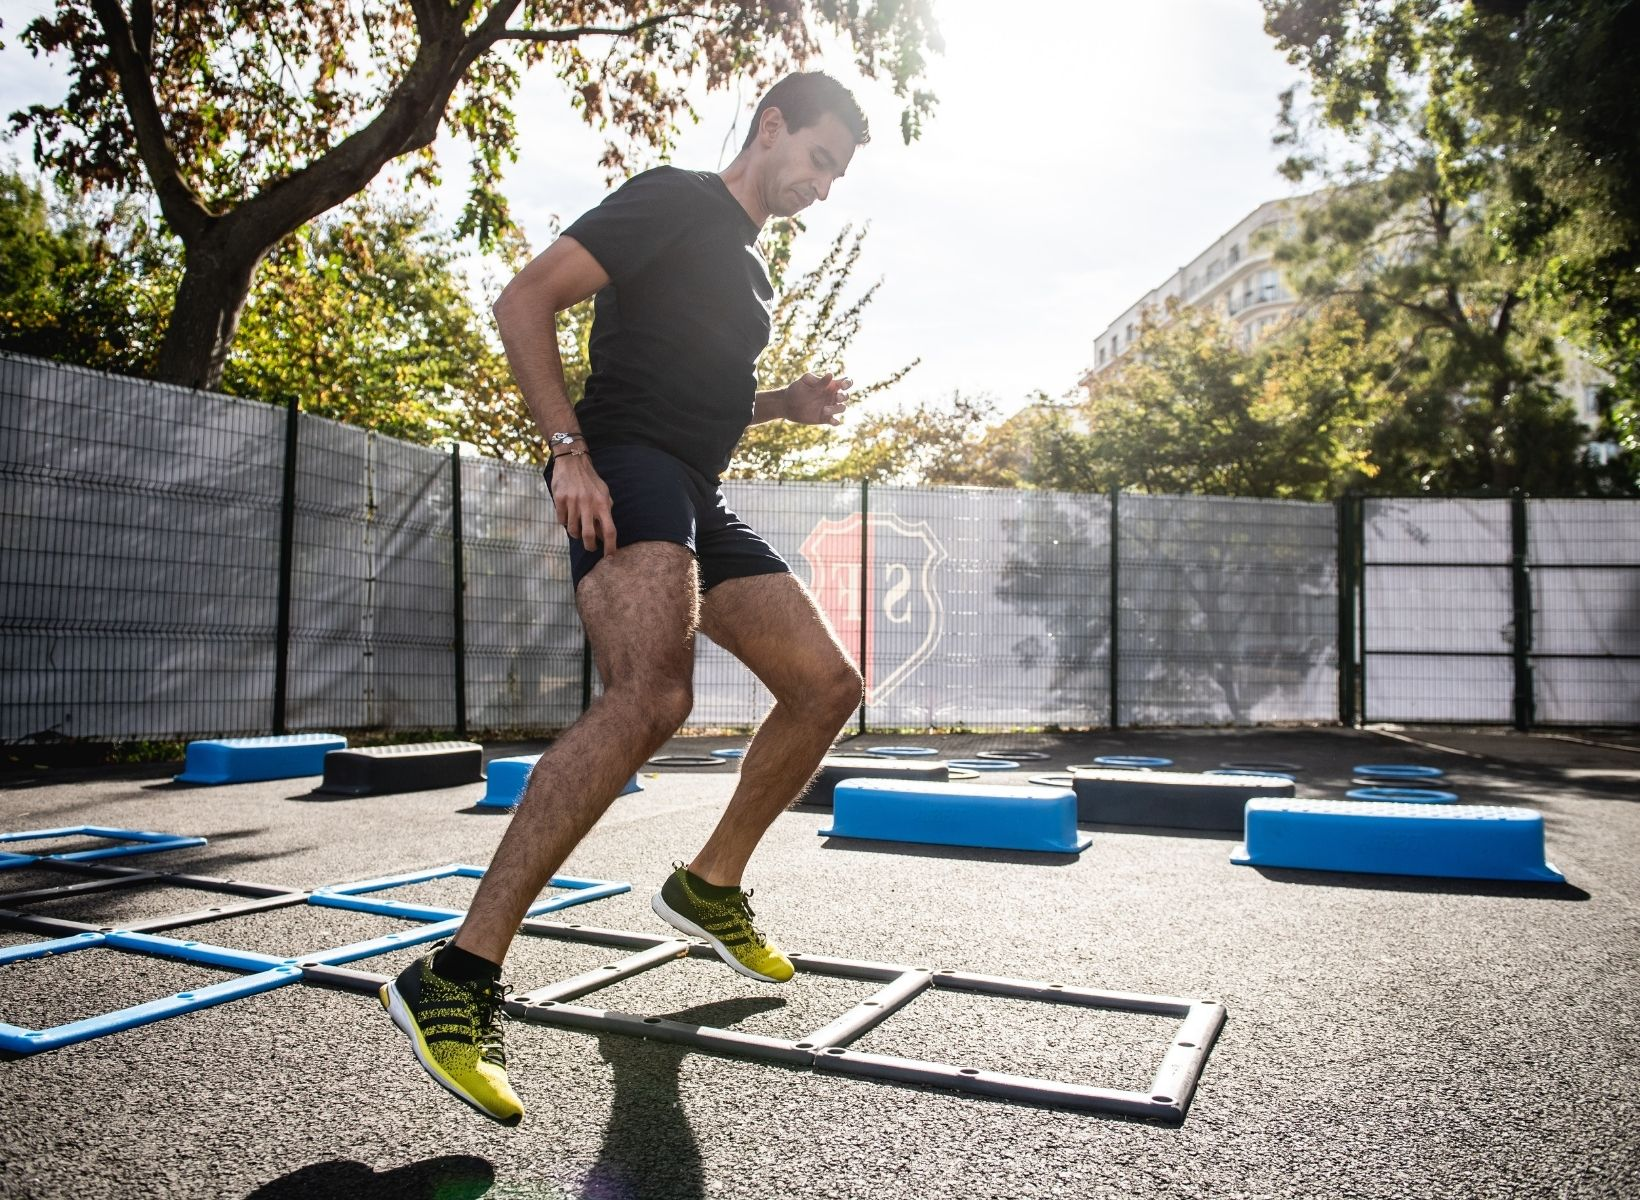 A man outside doing agility drills on a ladder